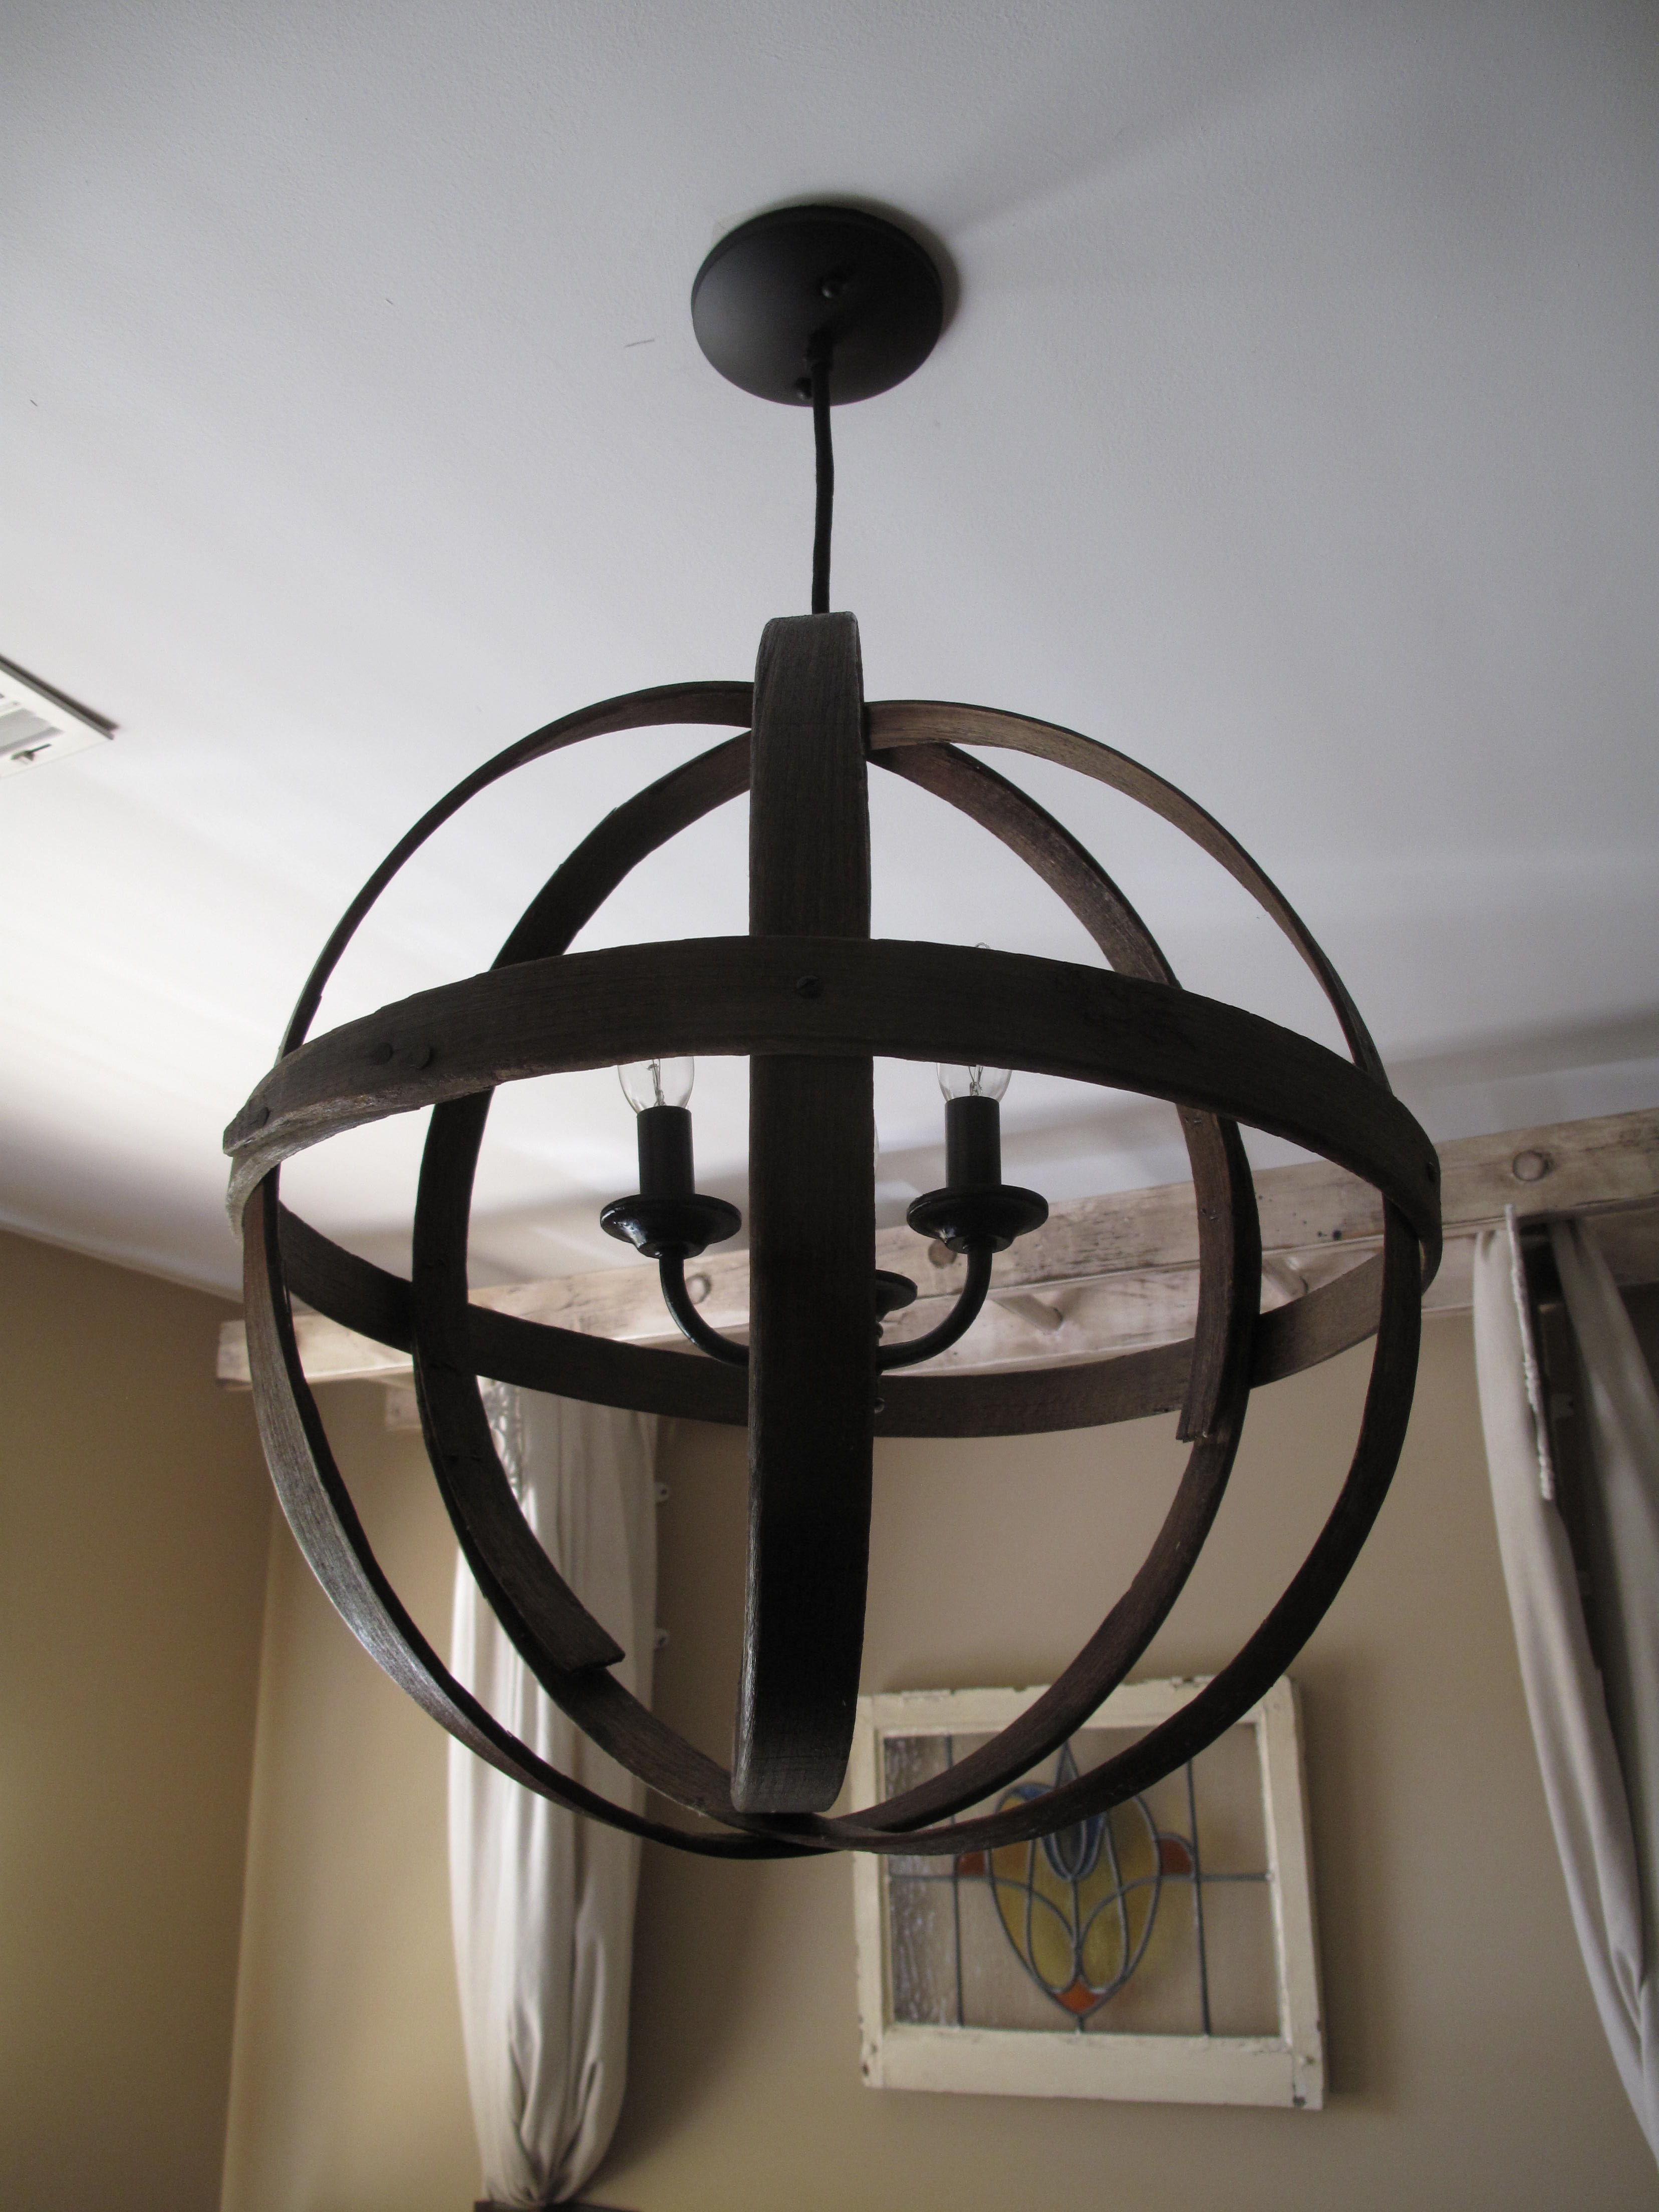 Diy orb chandelier scavenger chic still wanted to test out the light before attaching it to my ceiling fixture just in case anything came loose when i was shoving it back into the light aloadofball Images